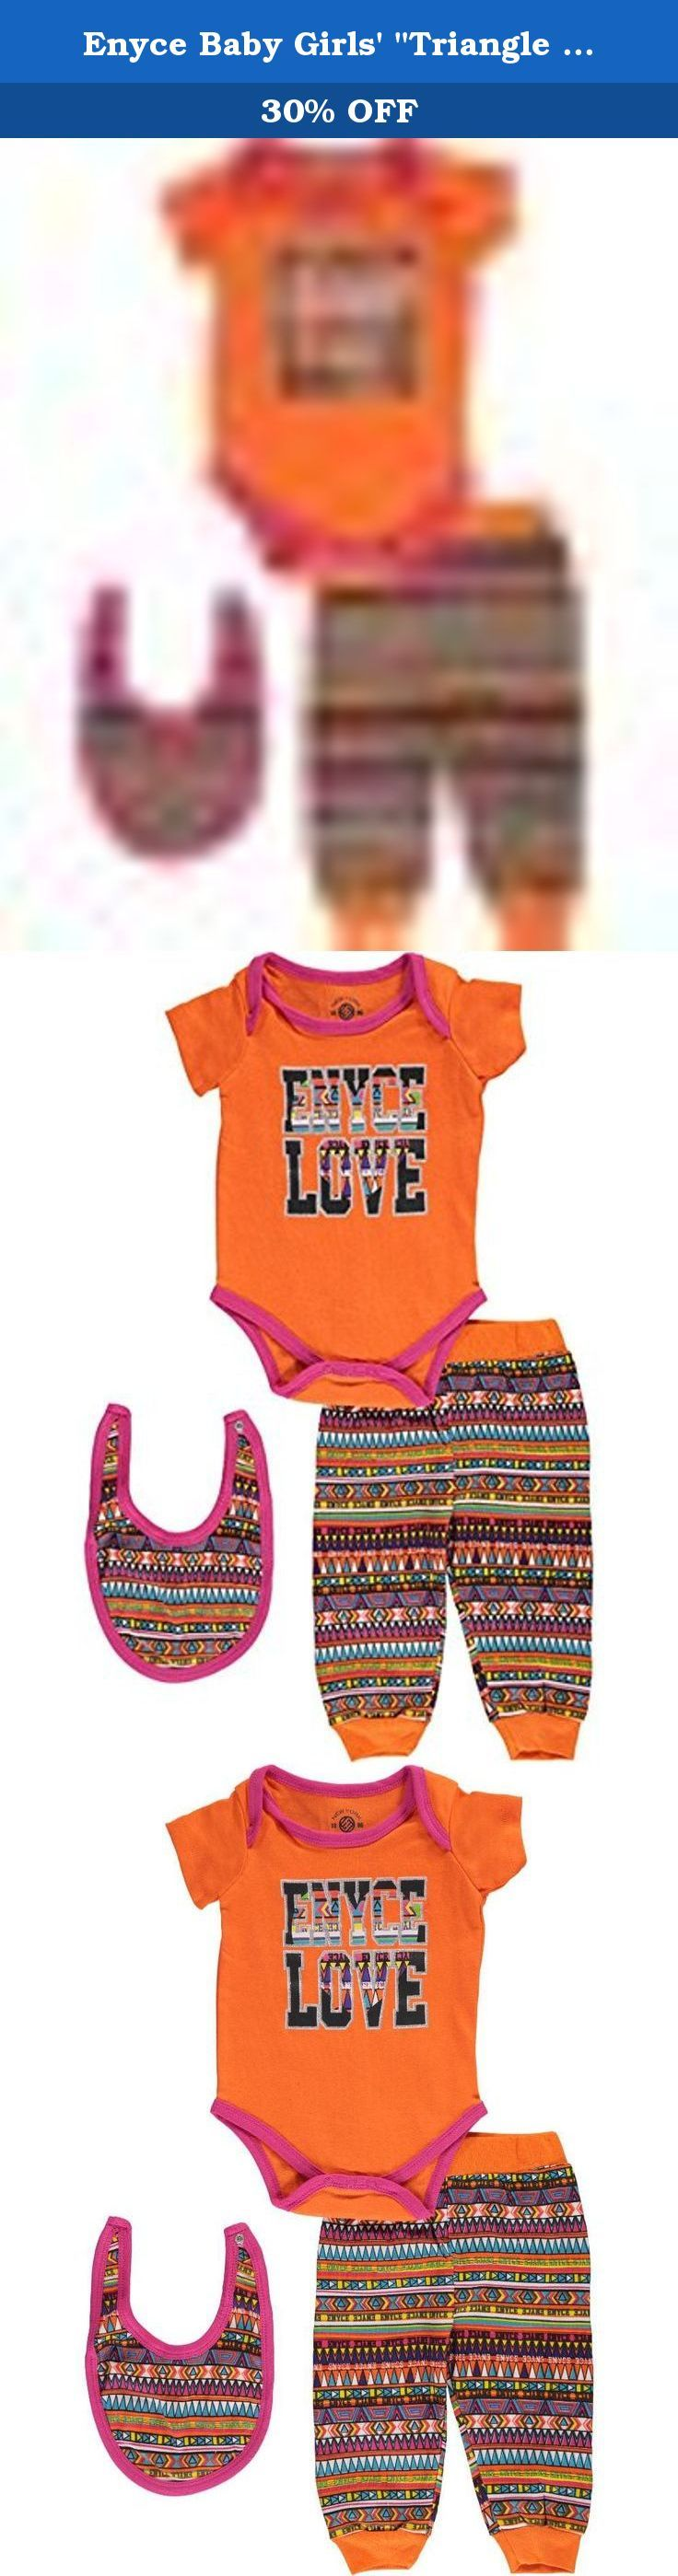 """Enyce Baby Girls' """"Triangle Print"""" 3-Piece Layette Set - orange, 6 - 9 months. They'll love the soft construction and fun accents of this Enyce 3-piece layette set! Enyce 3-piece layette set Jersey bodysuit with lap collar and easy-change snaps (100% cotton) Jersey joggers with elastic waistband (100% cotton) Bib with snap closure (100% cotton) Machine wash cold, inside out Imported."""